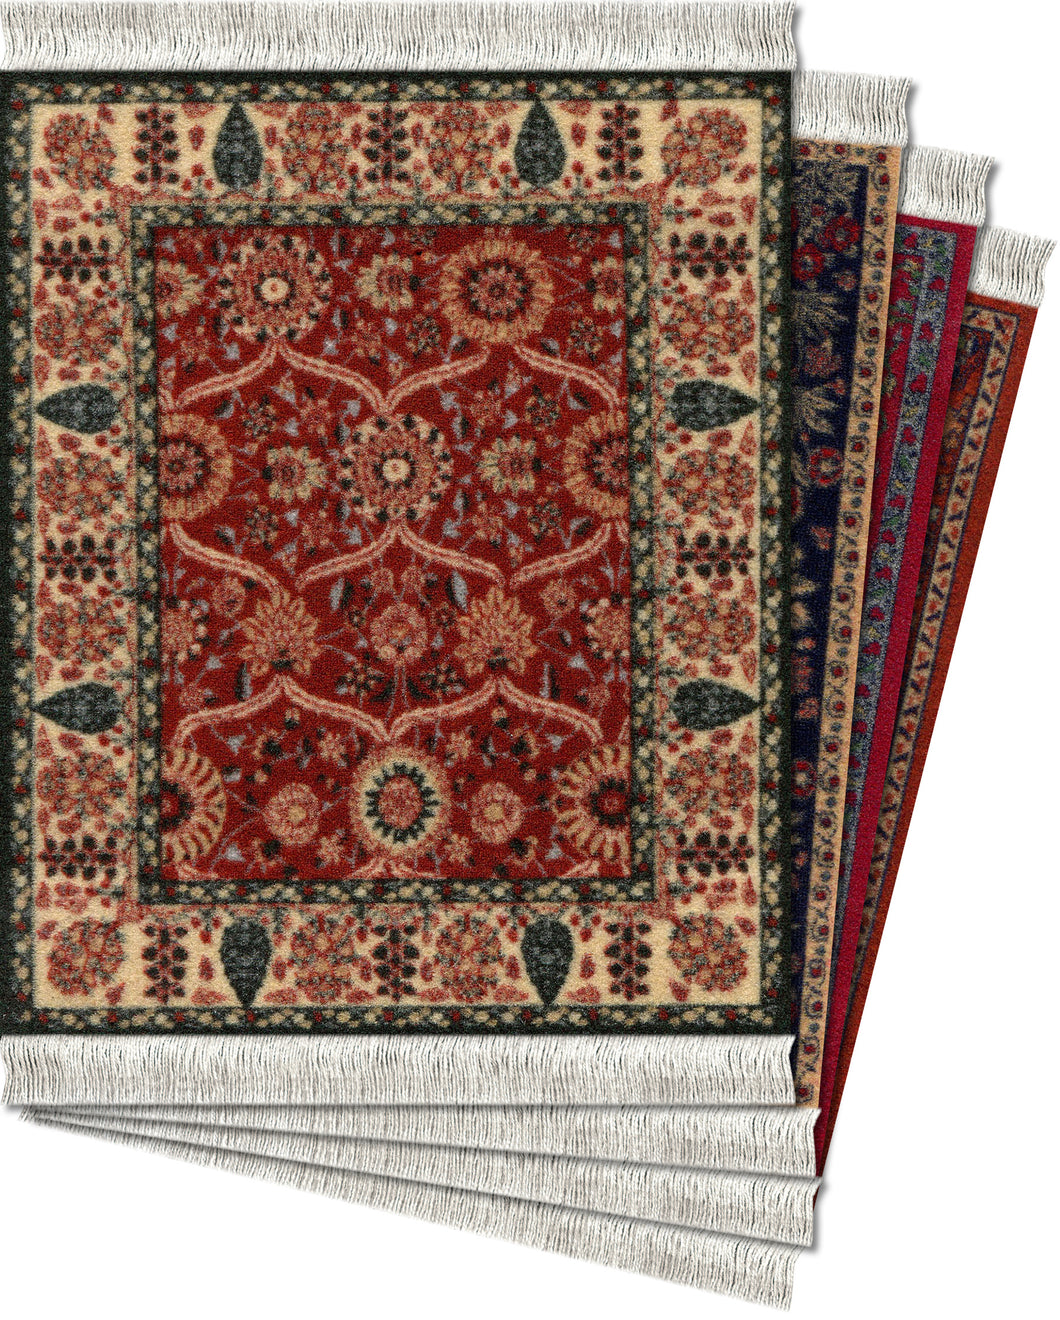 Assorted Metropolitan Museum of Art Coaster Rug Set